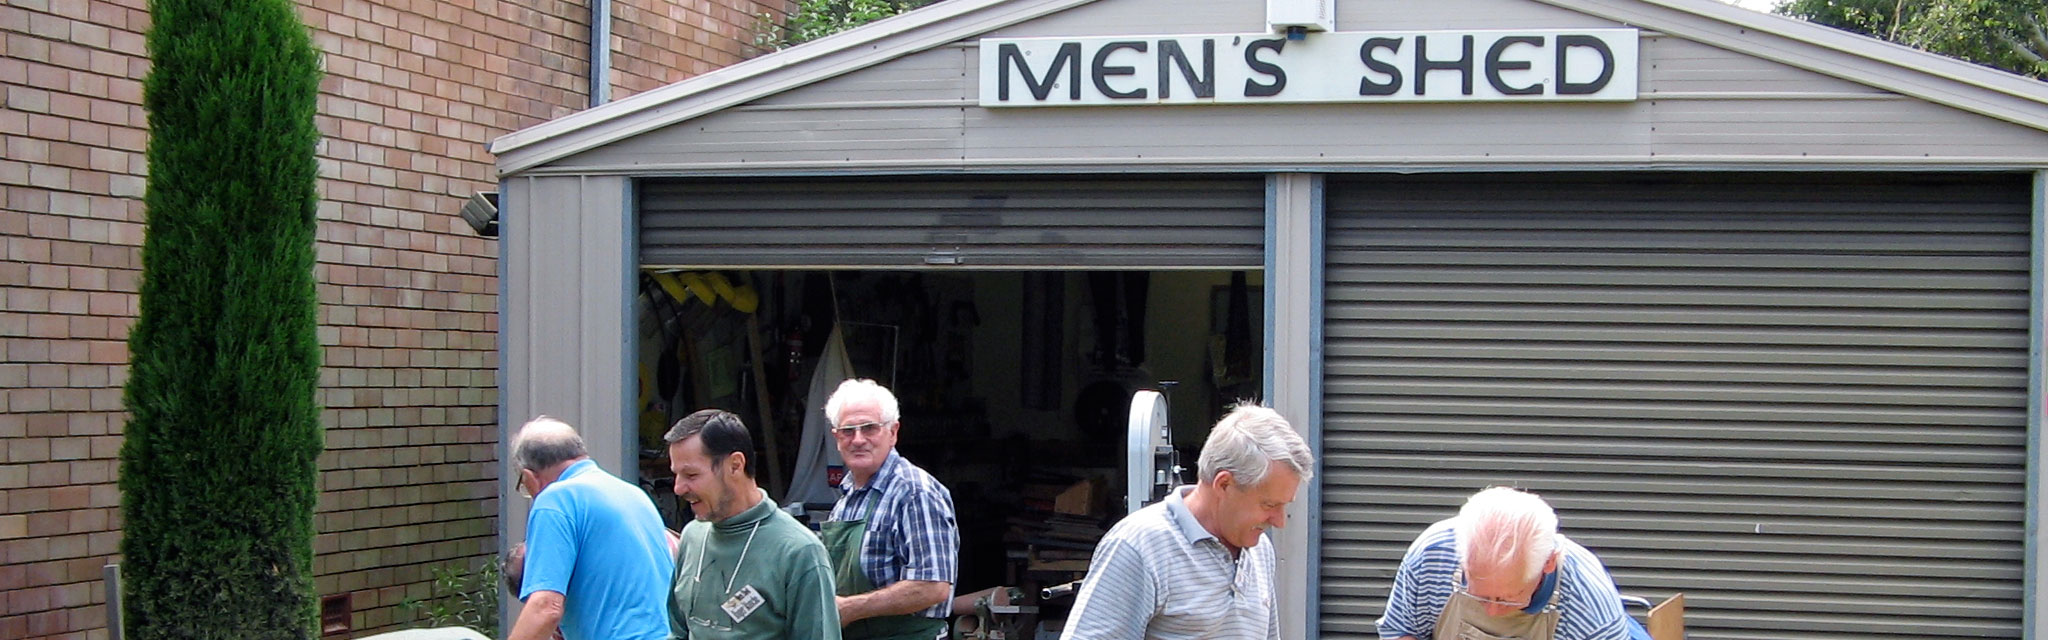 mens shed